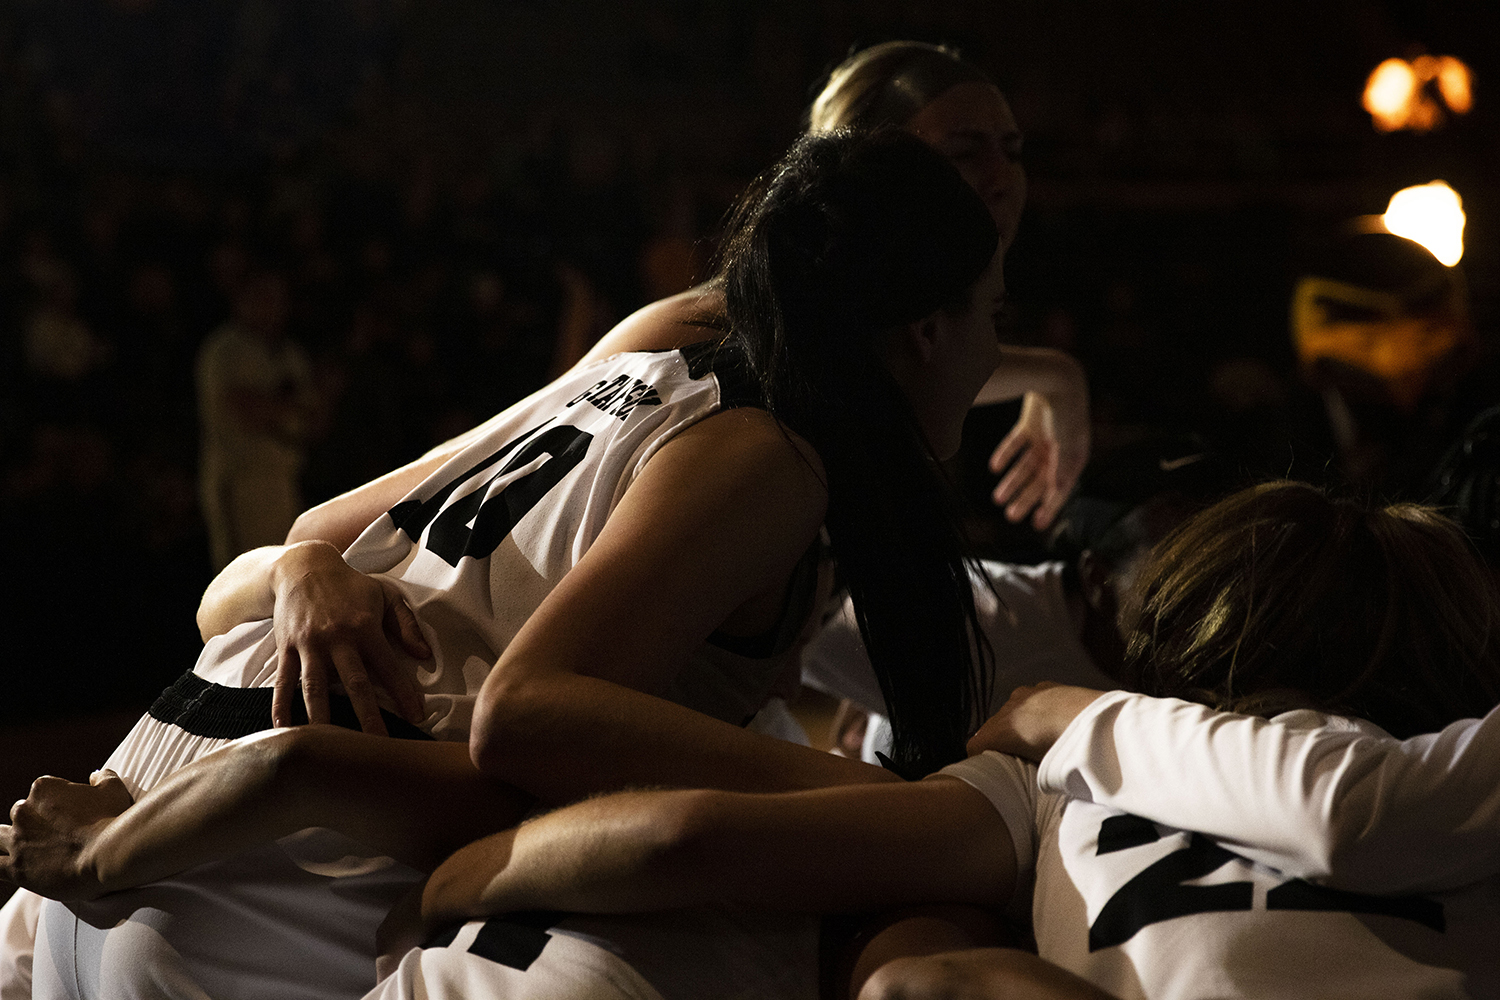 Iowa+forward+Megan+Gustafson+leans+into+the+pregame+huddle+during+the+Iowa%2FMichigan+women%27s+basketball+game+at+Carver-Hawkeye+Arena+on+Thursday%2C+January+17%2C+2019.+The+Hawkeyes+defeated+the+Wolverines%2C+75-61.+